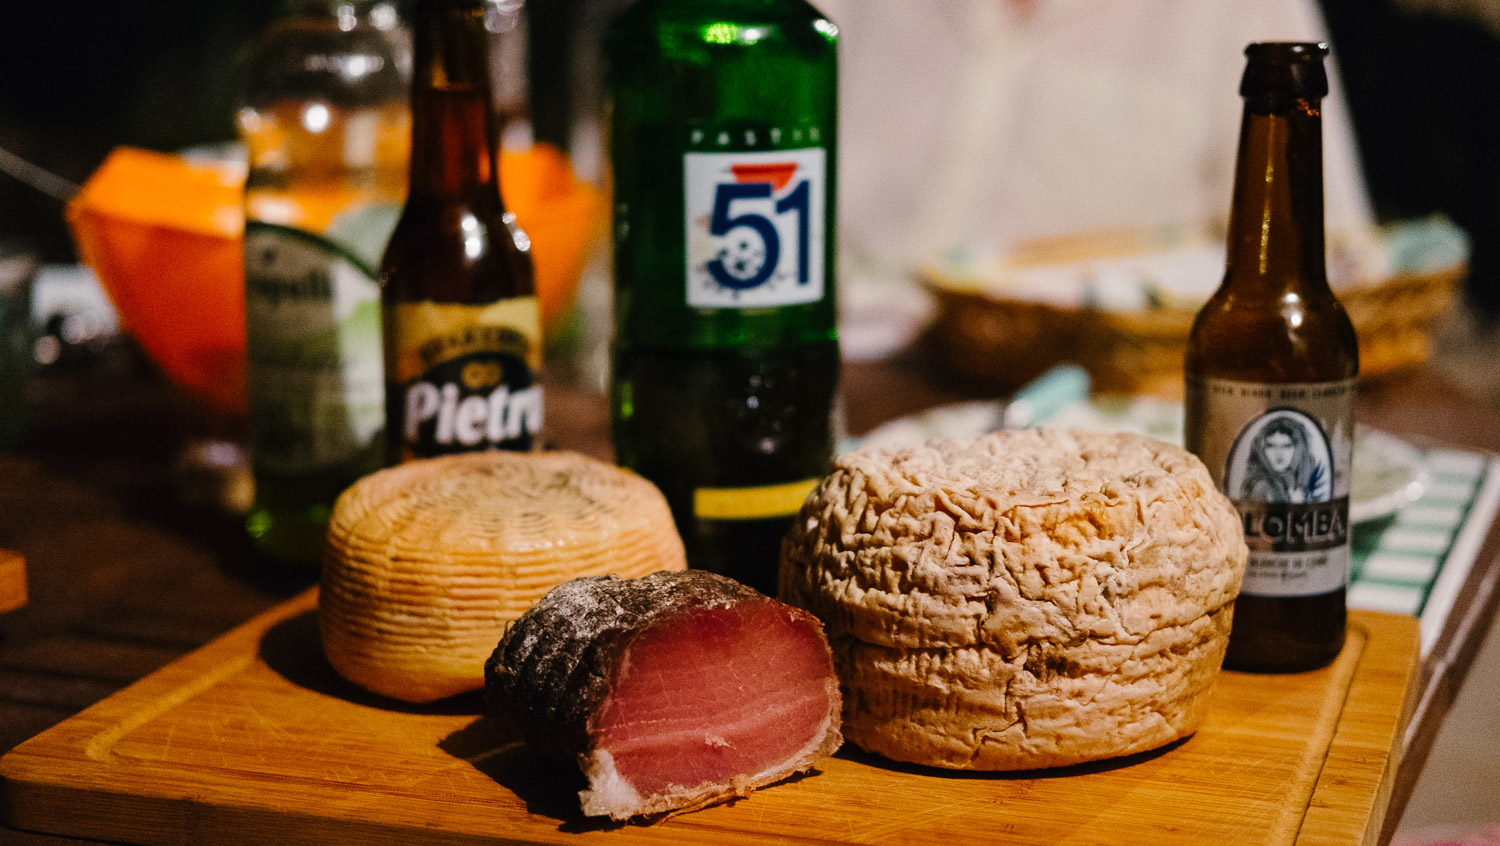 Cheese, meats and Corsican beer are part of a good Corsican meal